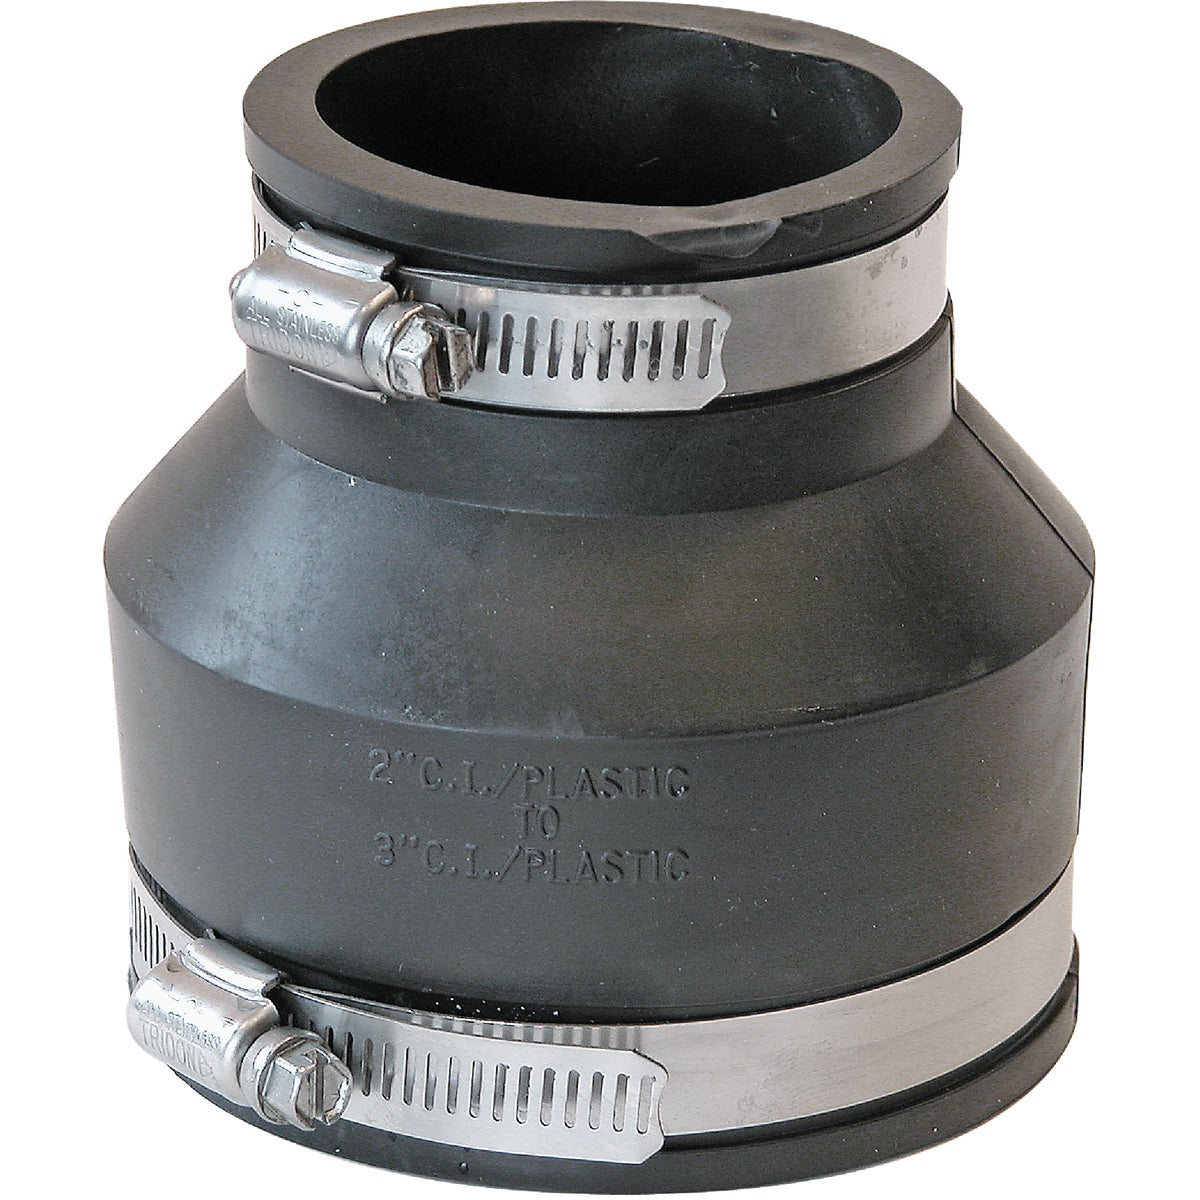 3X2 FLEXIBLE COUPLING - P1056-32 by Fernco Inc